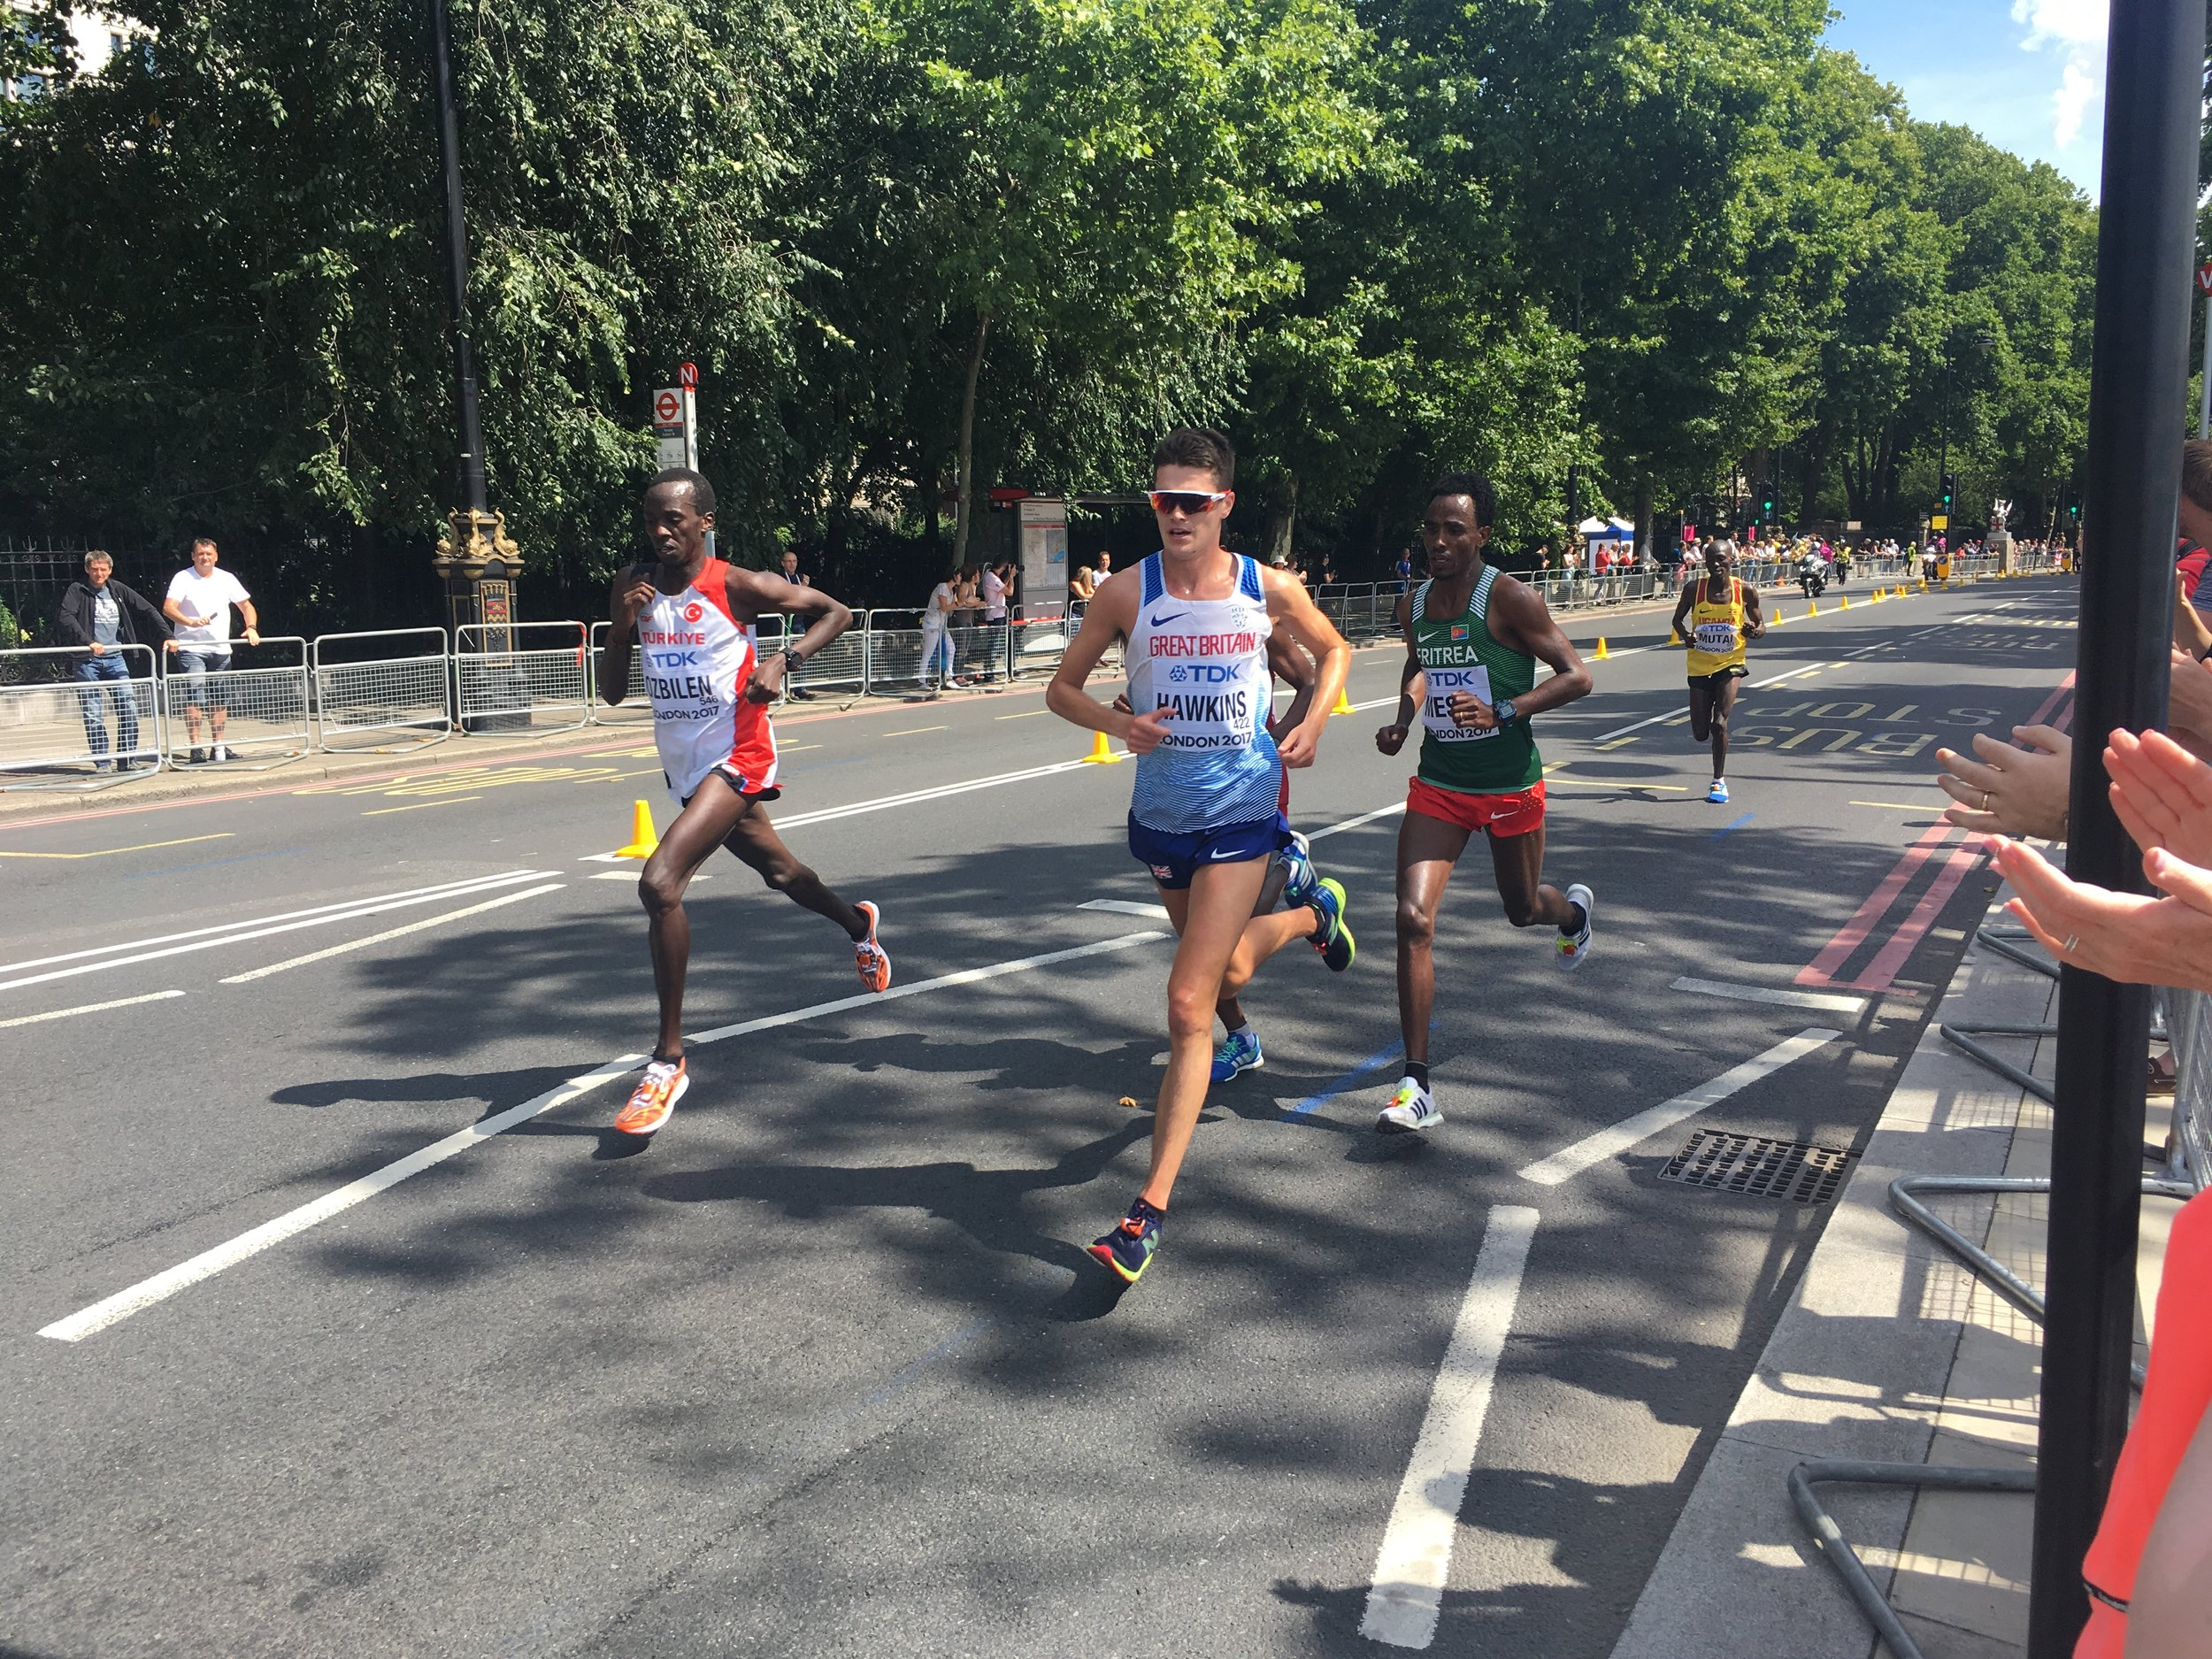 Callum Hawkins from GB, en route to a great 4th place finish